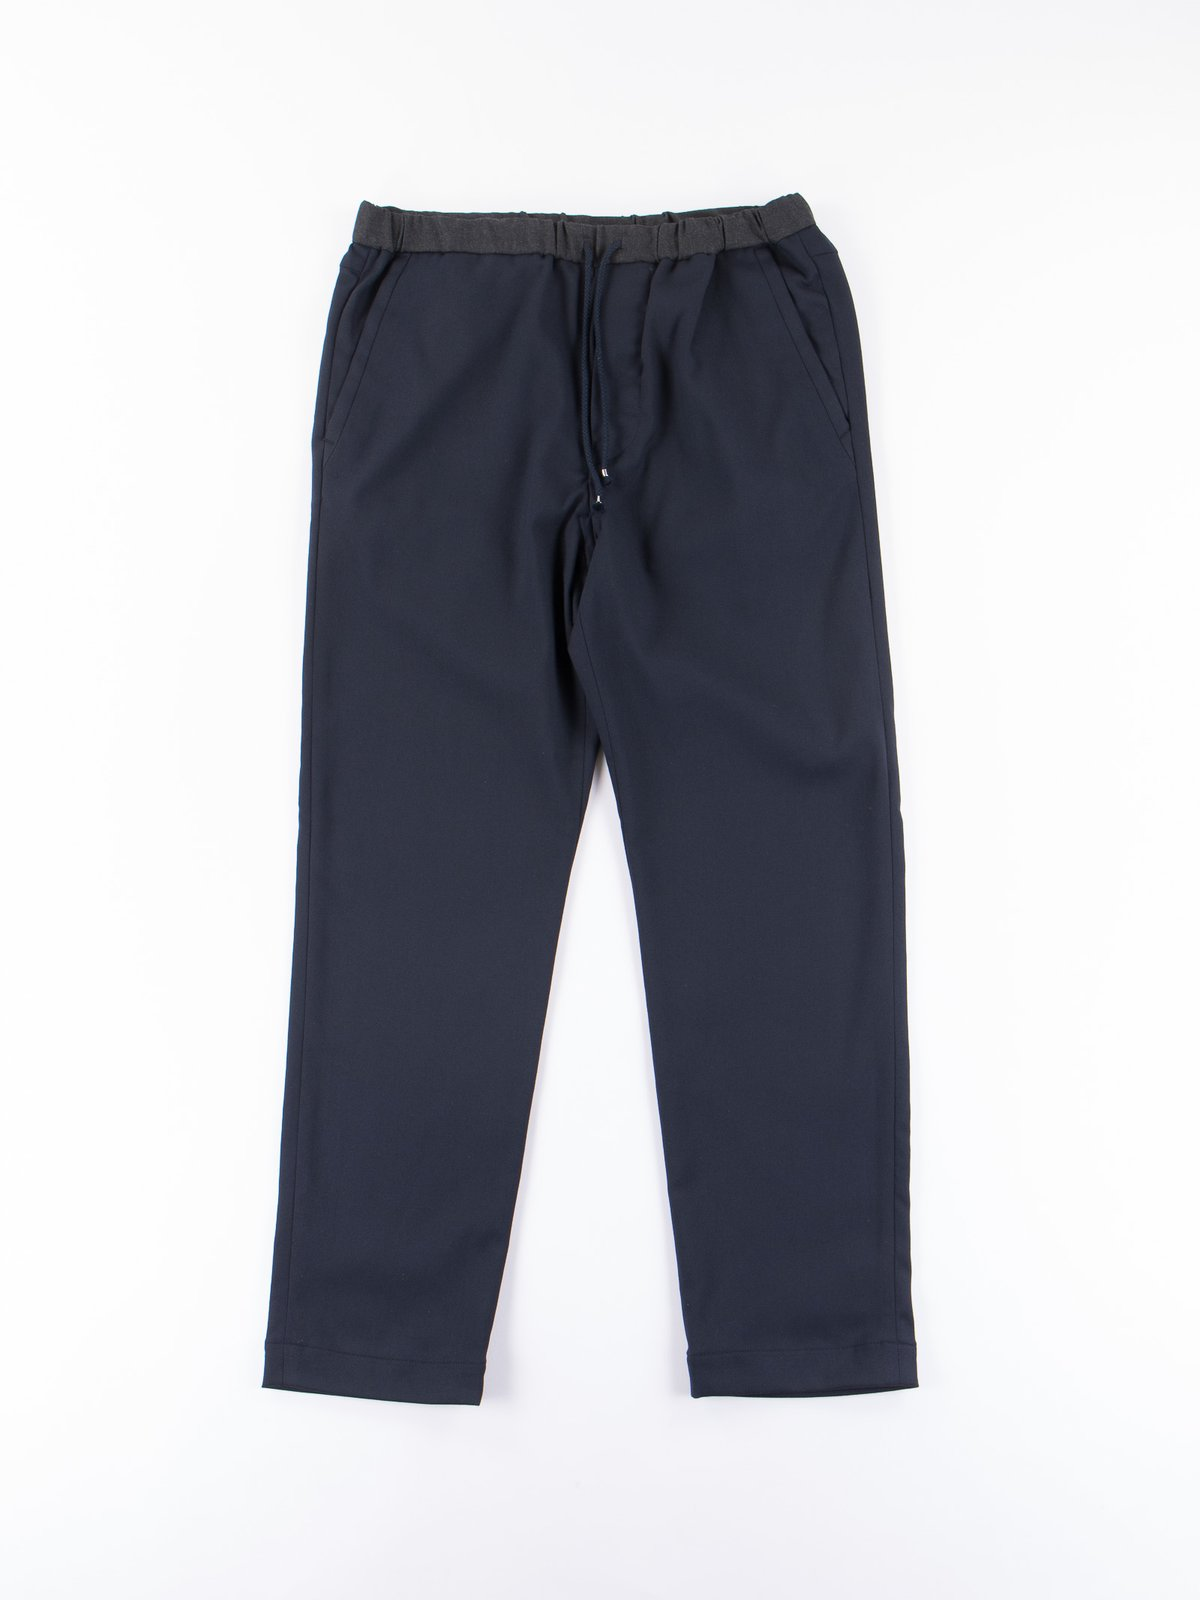 Dark Navy Slim Easy Slacks - Image 1